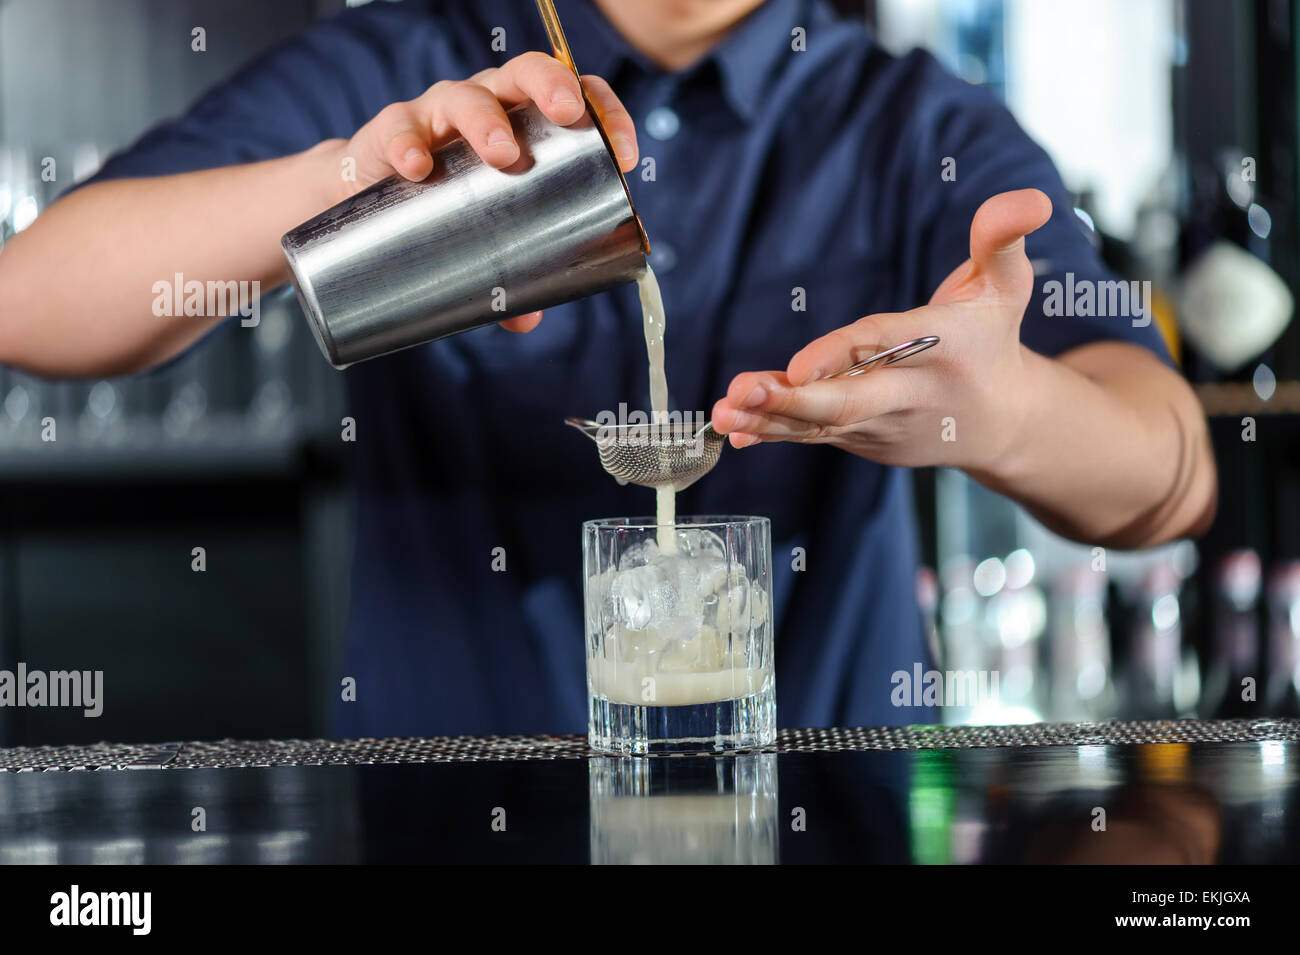 Barman makes cocktail in a bar - Stock Image